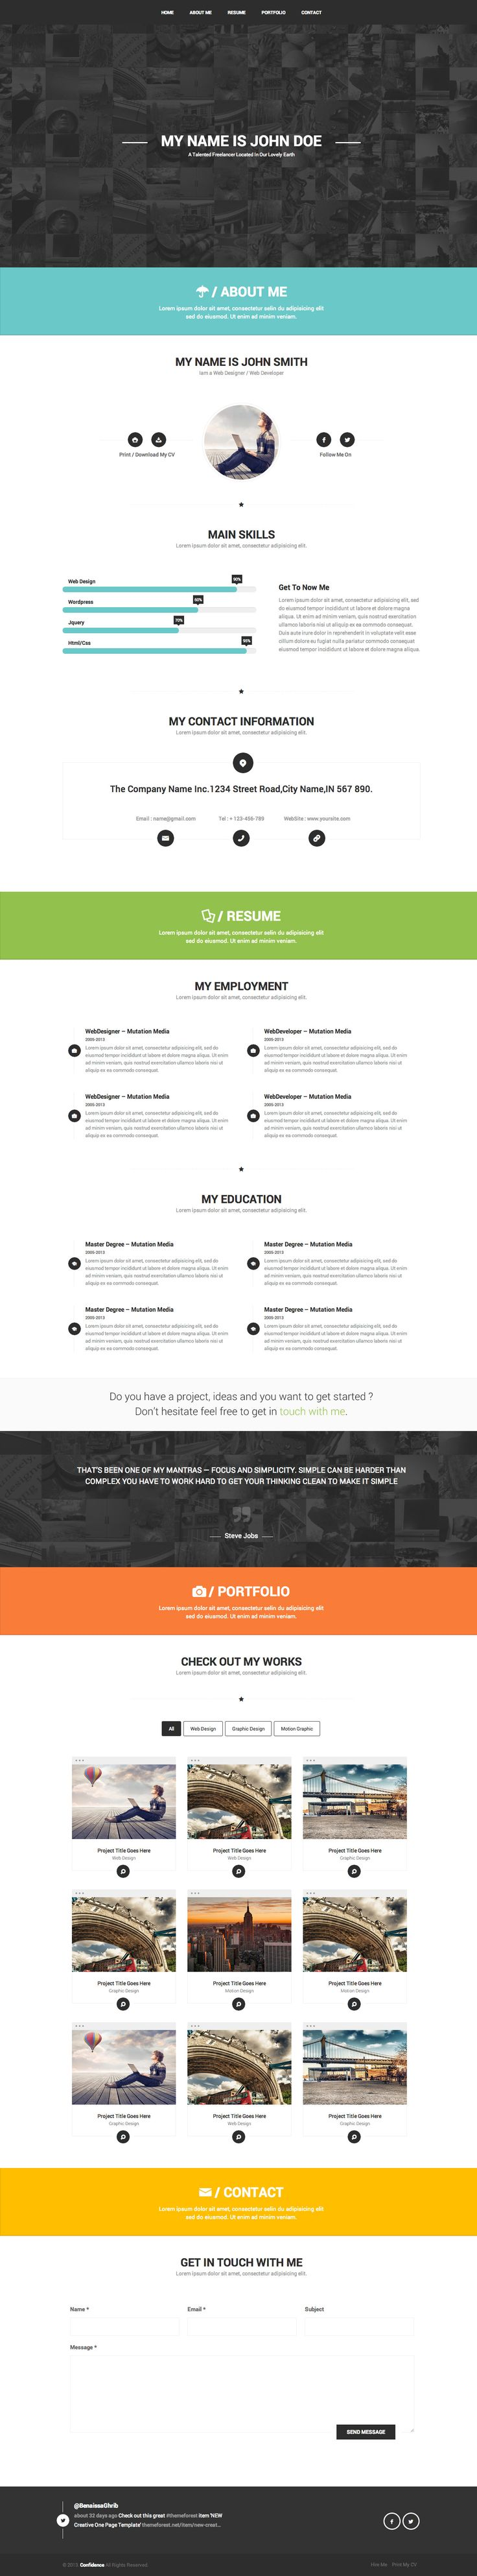 'Confidence' is a resume style HTML template perfect for anyone needing a professional online CV. There are skills, employment and education sections much like a traditional resume layout. There is also a bonus portfolio filter section to showcase your work. The site is a bit heavy on the amount of icons used but that can be removed if you feel the same way.